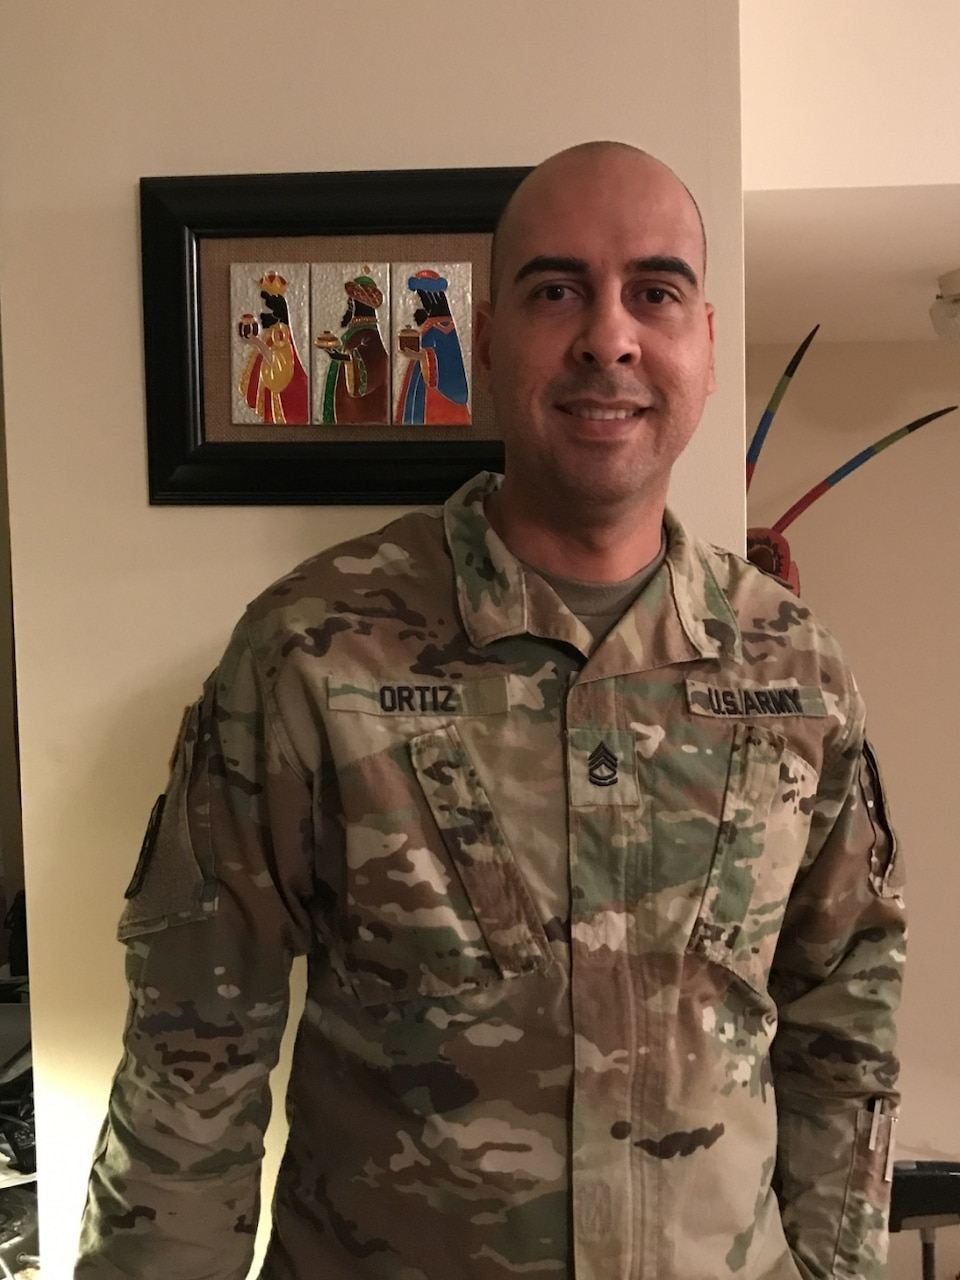 Army Sgt. 1st Class Rafael Ortiz, a cybersecurity noncommissioned officer with the 781st Military Intelligence Battalion, poses for a photo at Fort George G. Meade, Md., Dec. 7, 2017. Ortiz used his personal leave time to cover his 21-day deployment with the Red Cross to assist others after Hurricane Maria struck Puerto Rico, a U.S. territory, on Sept. 20. Courtesy photo